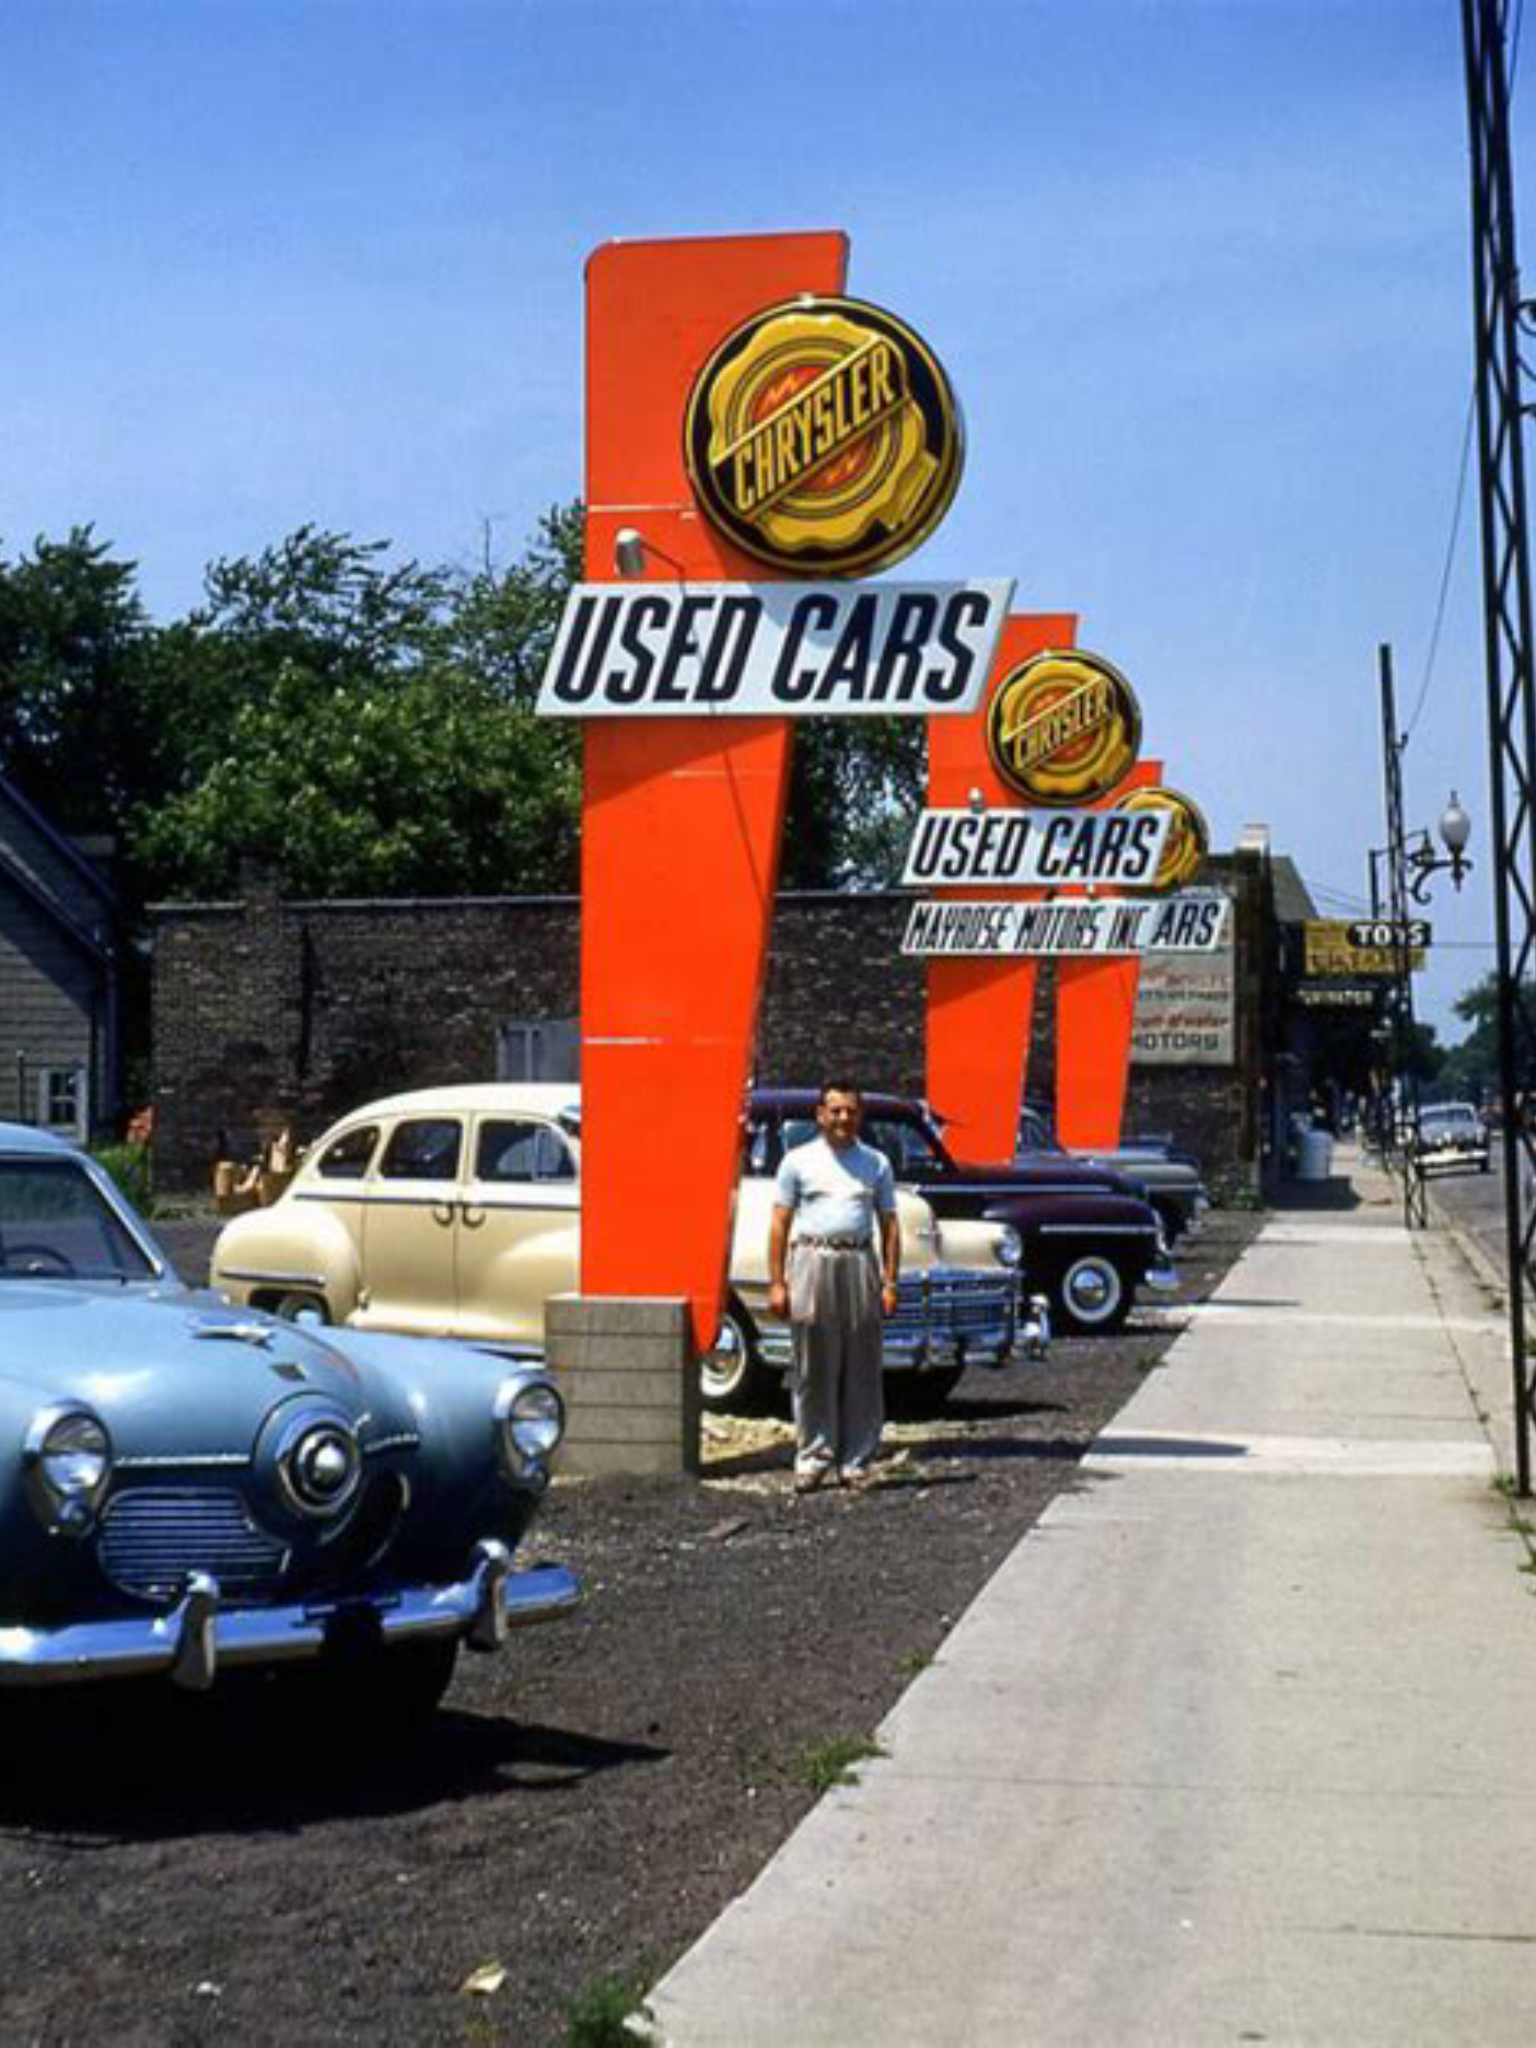 1950 S Mayrose Motors Inc Chrysler Plymouth Studebaker Dealership Melrose Park Illinois Used Car Lots Car Lot Used Cars